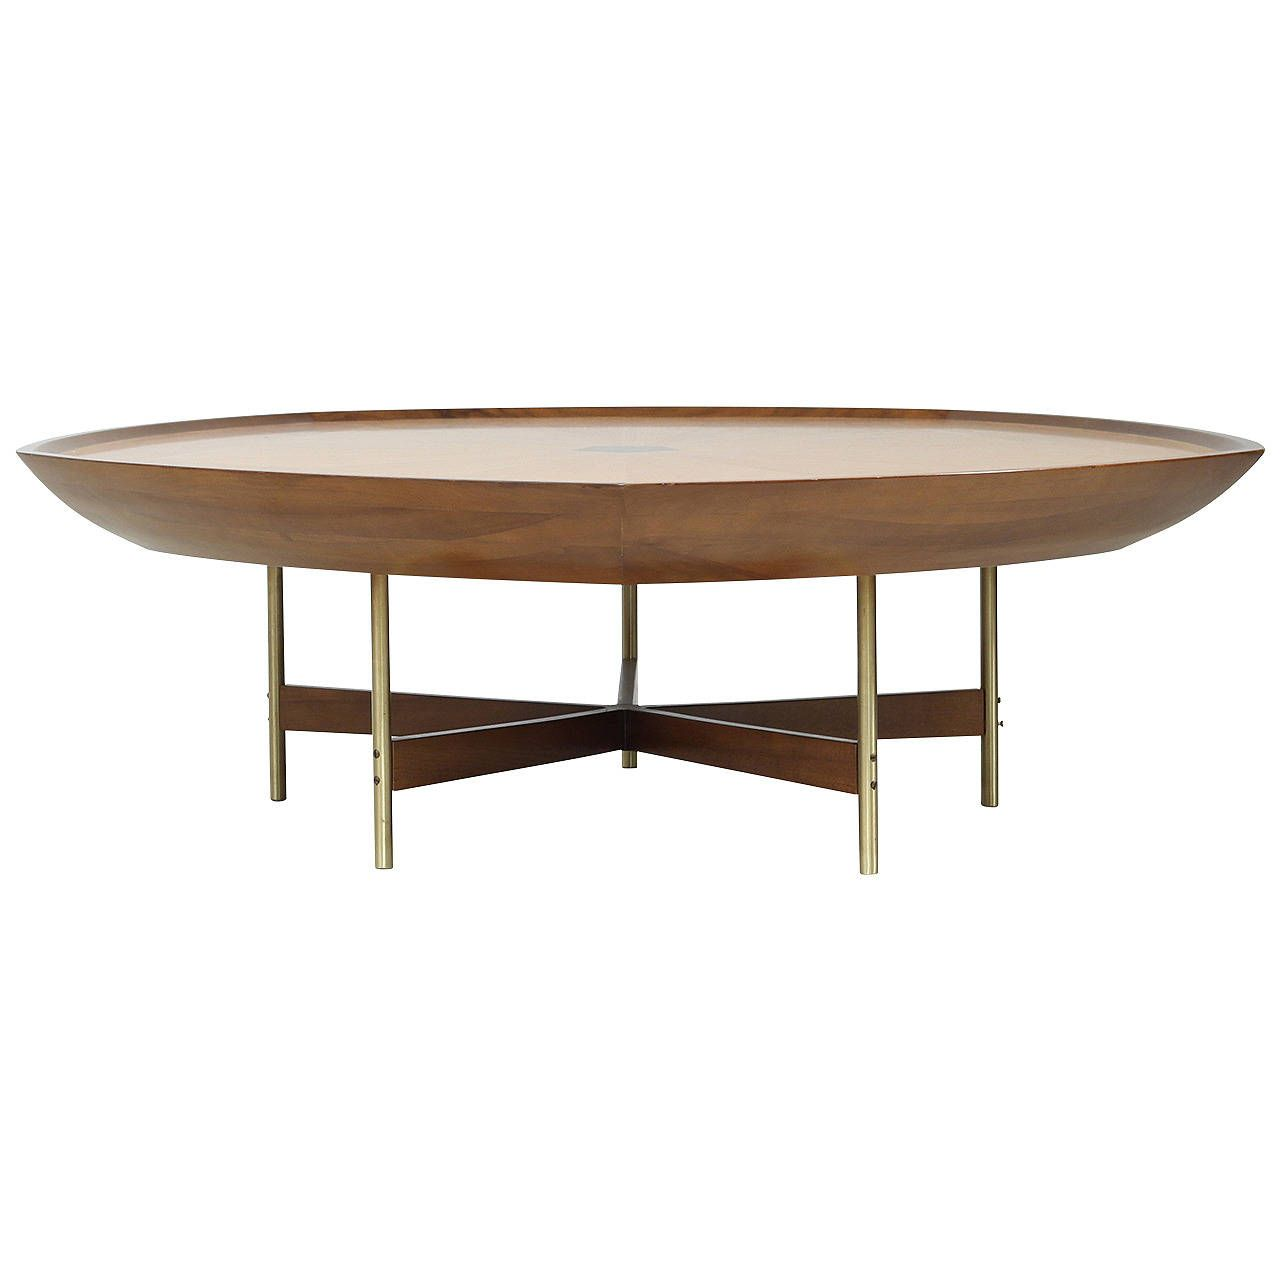 Large Limited Production Pentagon Table By Paul Tuttle 1stdibs Com Coffee Table Furniture Coffee Table Design Table Furniture [ 1280 x 1280 Pixel ]